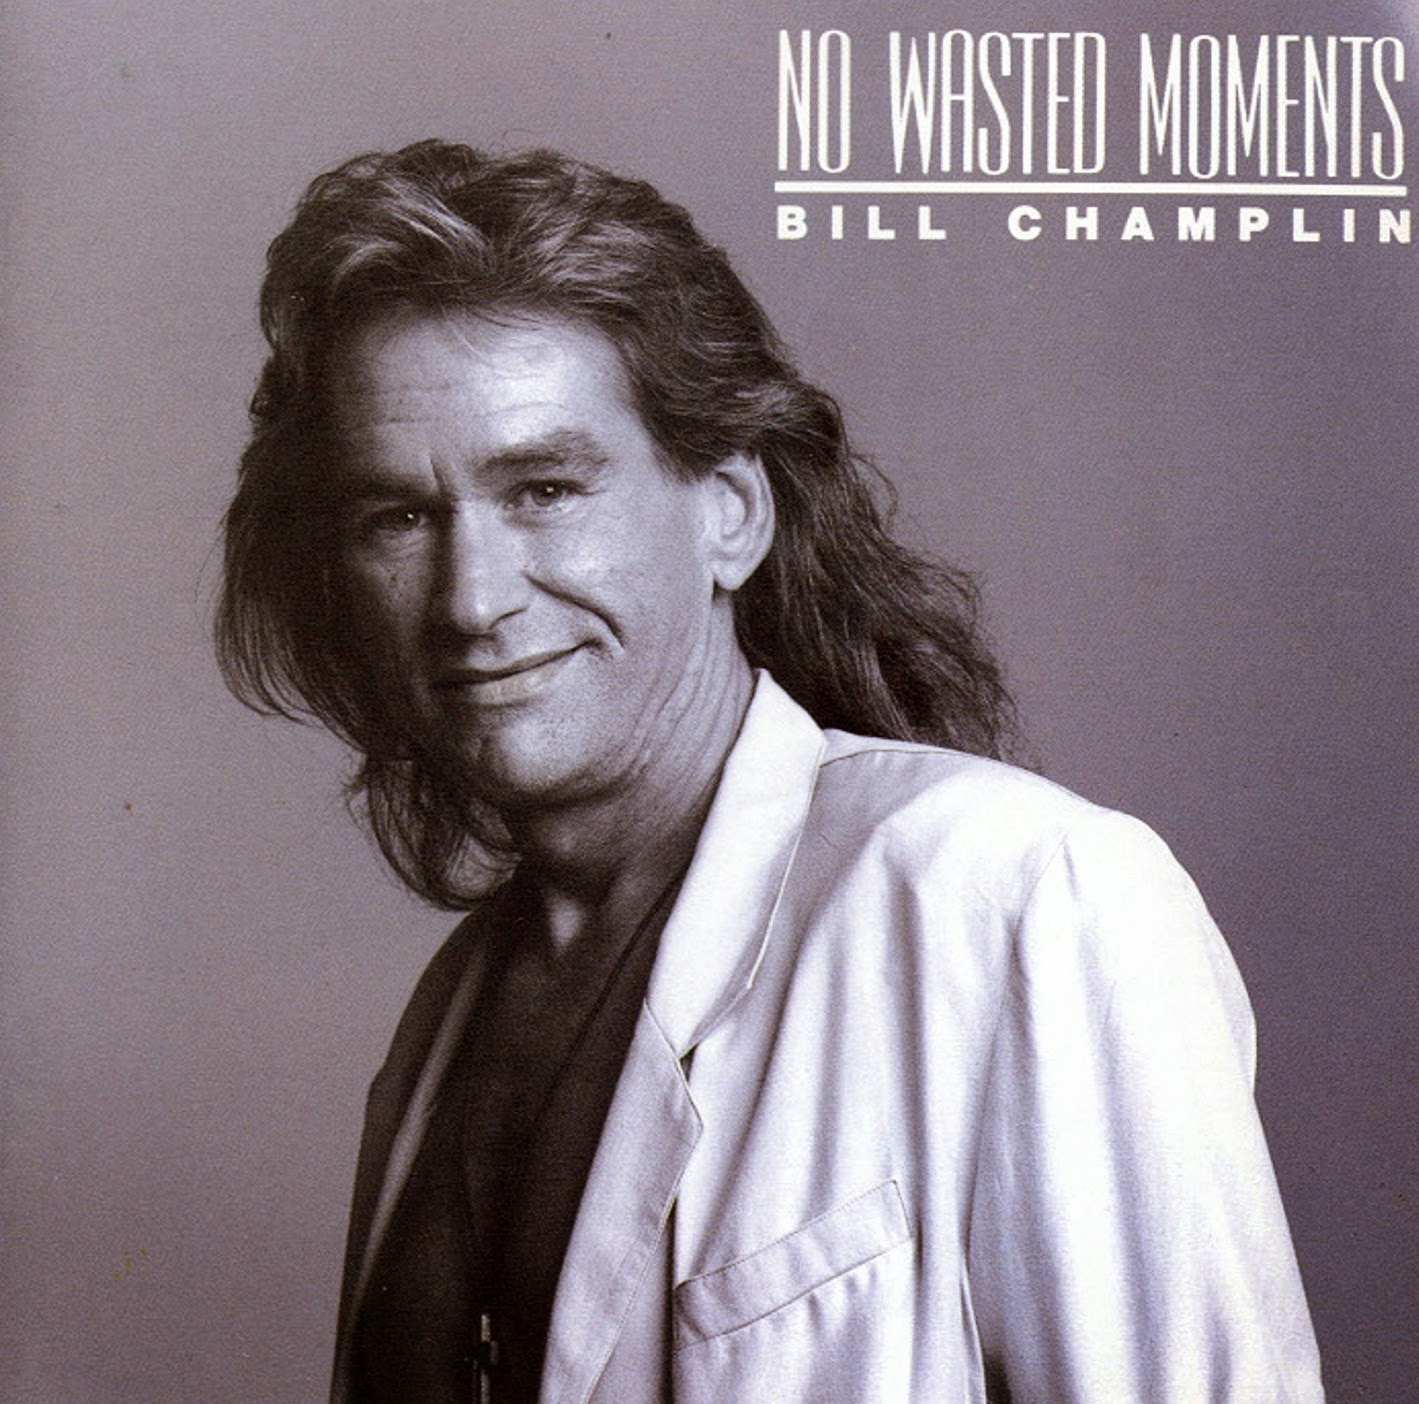 Bill Champlin No wasted moments 1990